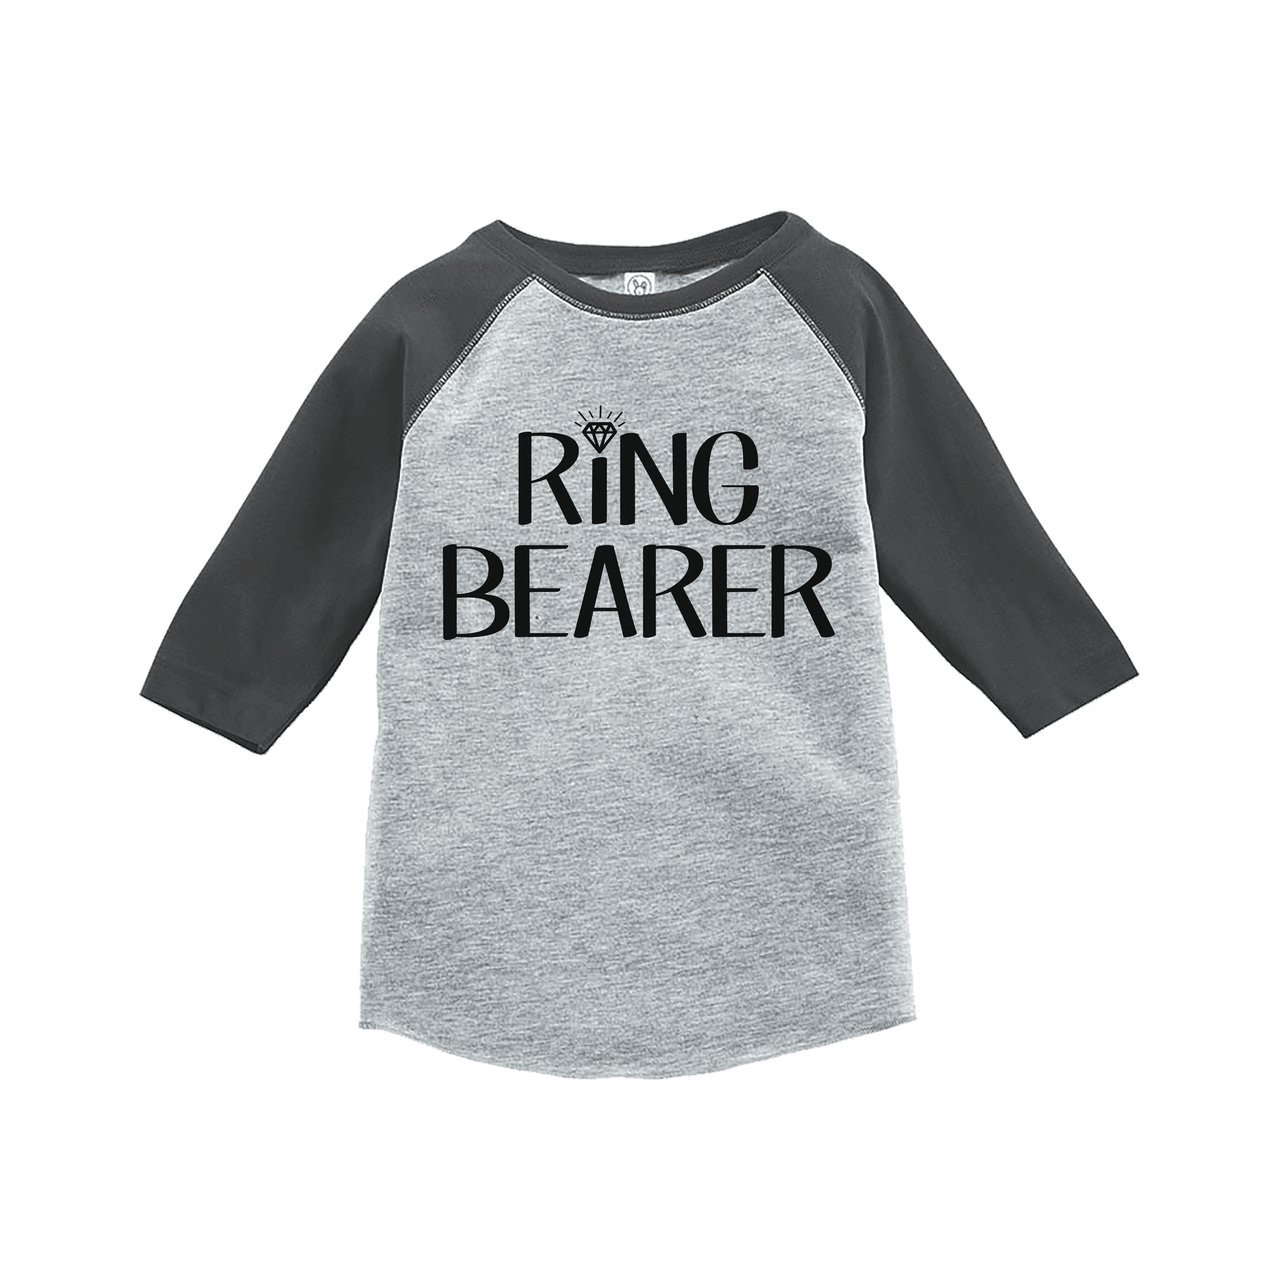 7 ate 9 Apparel Youth Boy's Ring Bearer Wedding Grey Raglan XL